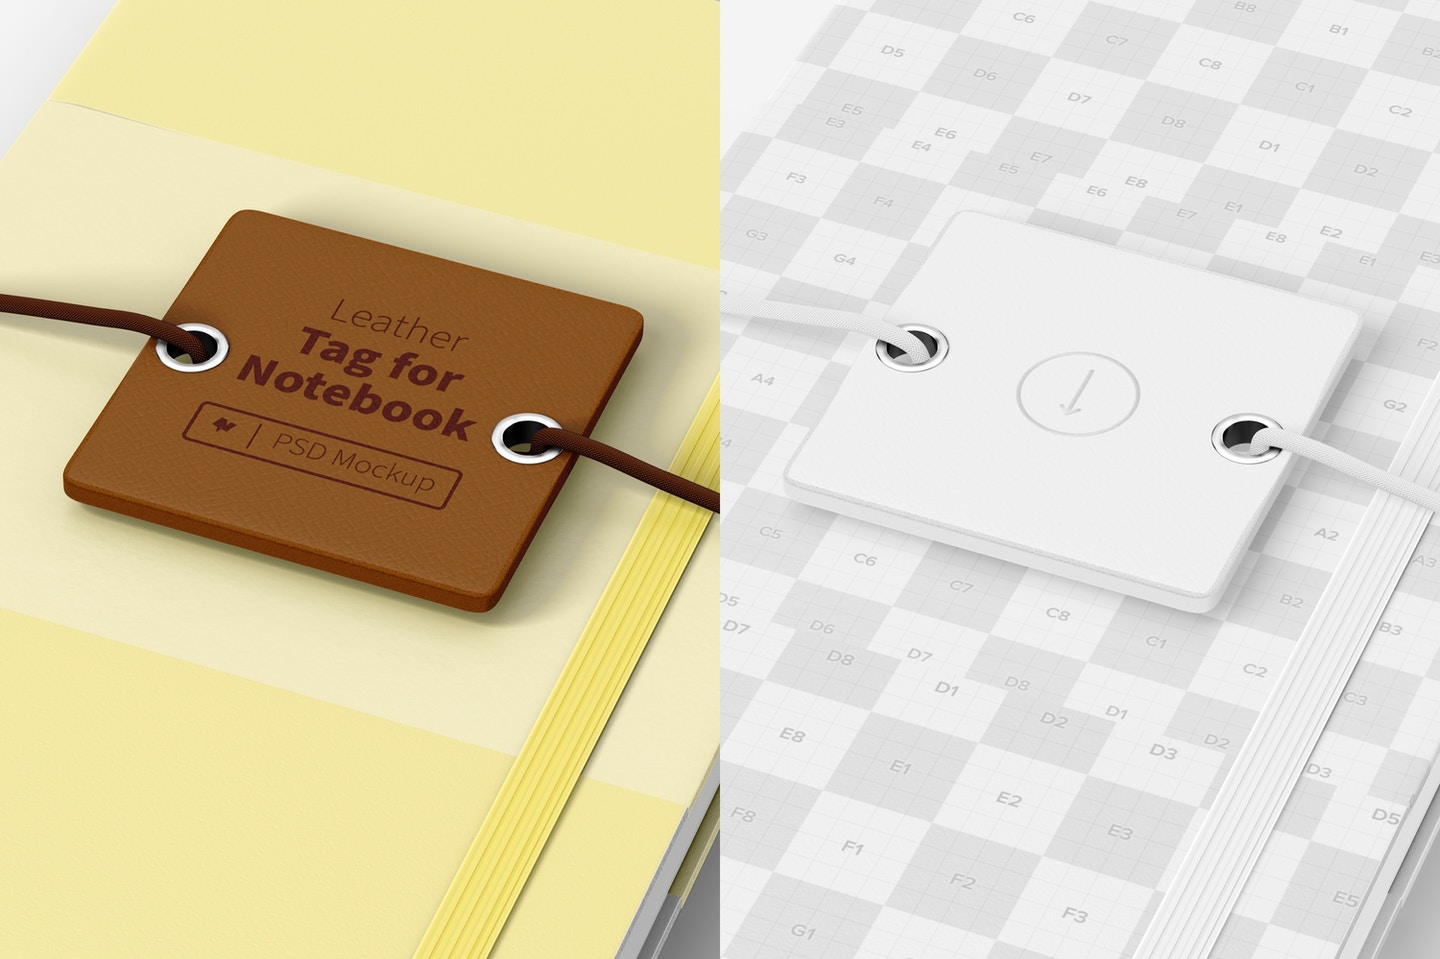 Leather Tag For Notebook Mockup, Close Up